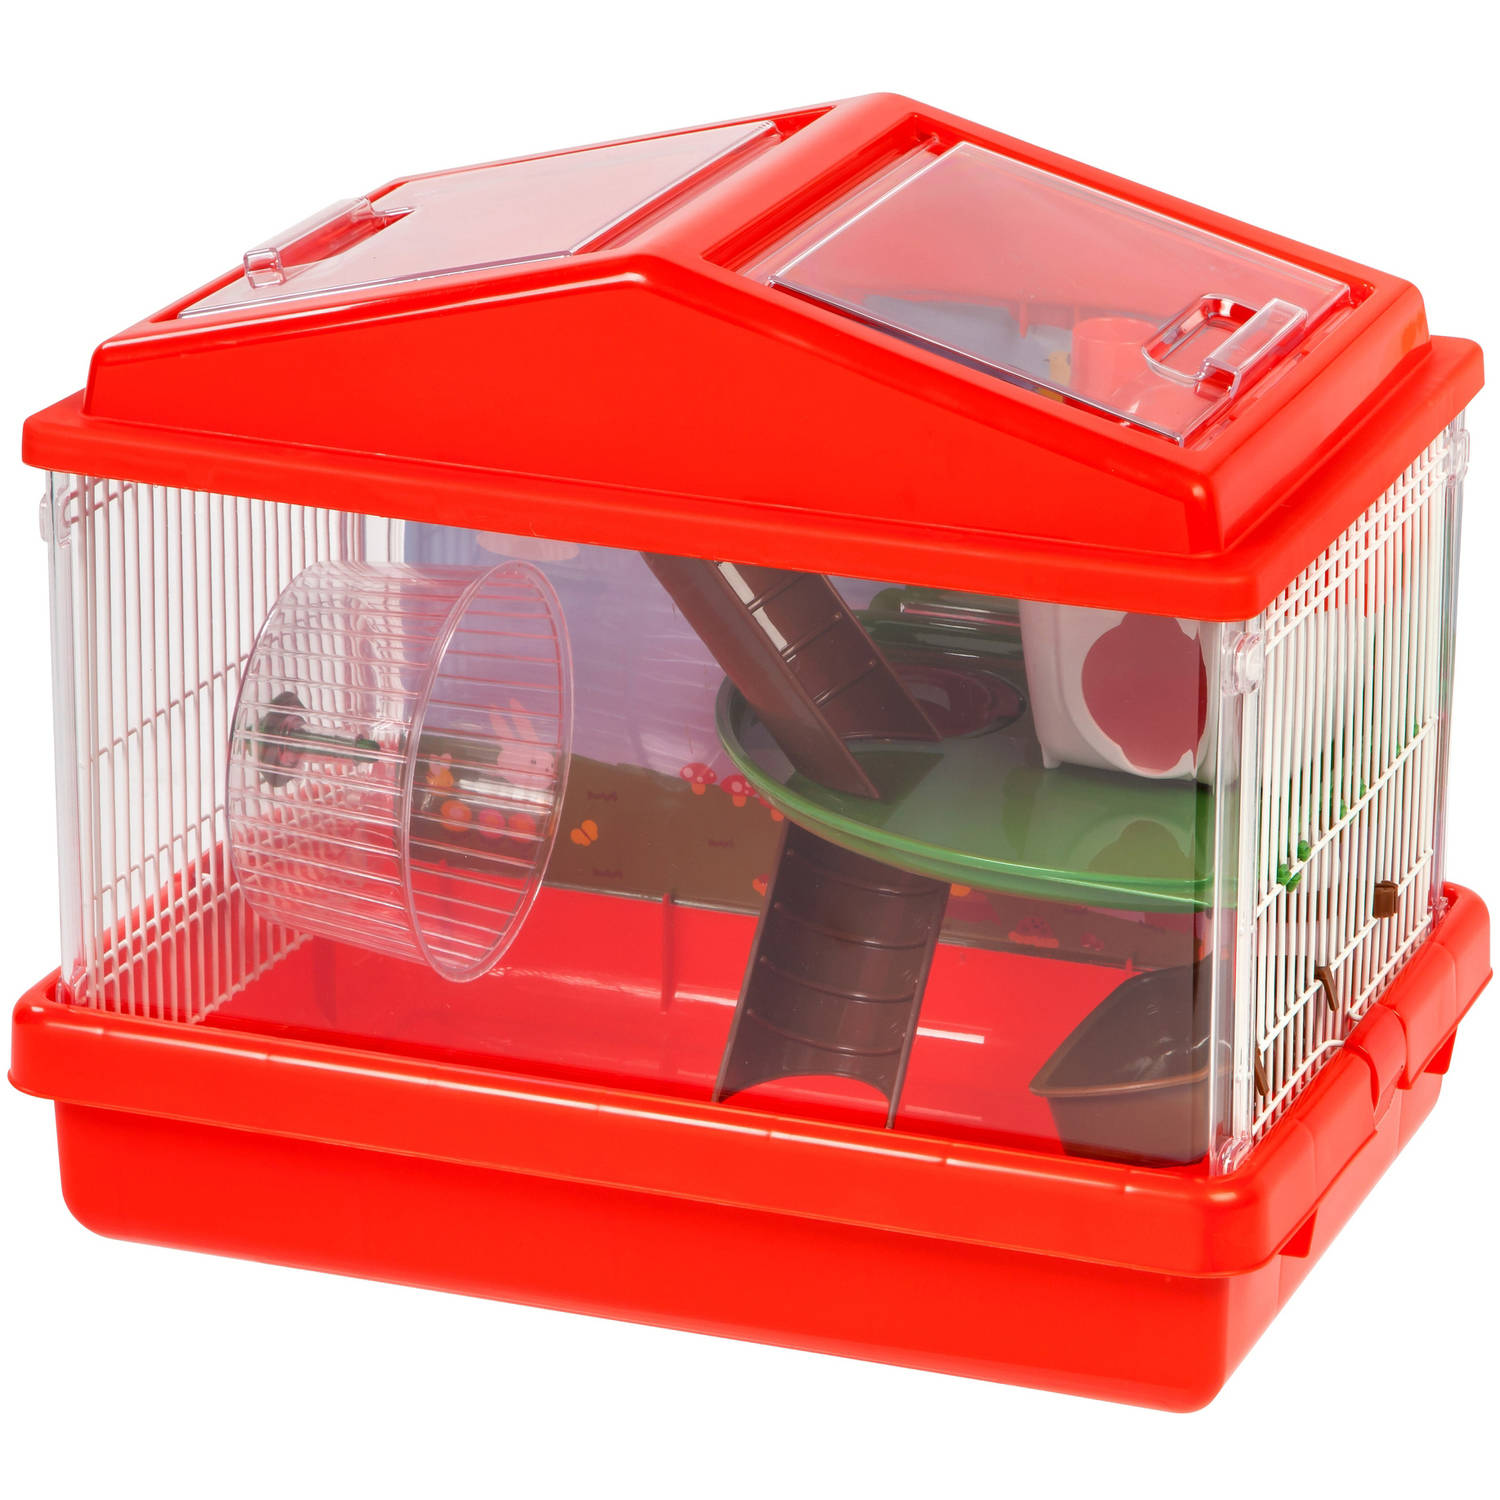 IRIS 2-Tier Red Hamster Cage by IRIS USA, Inc.